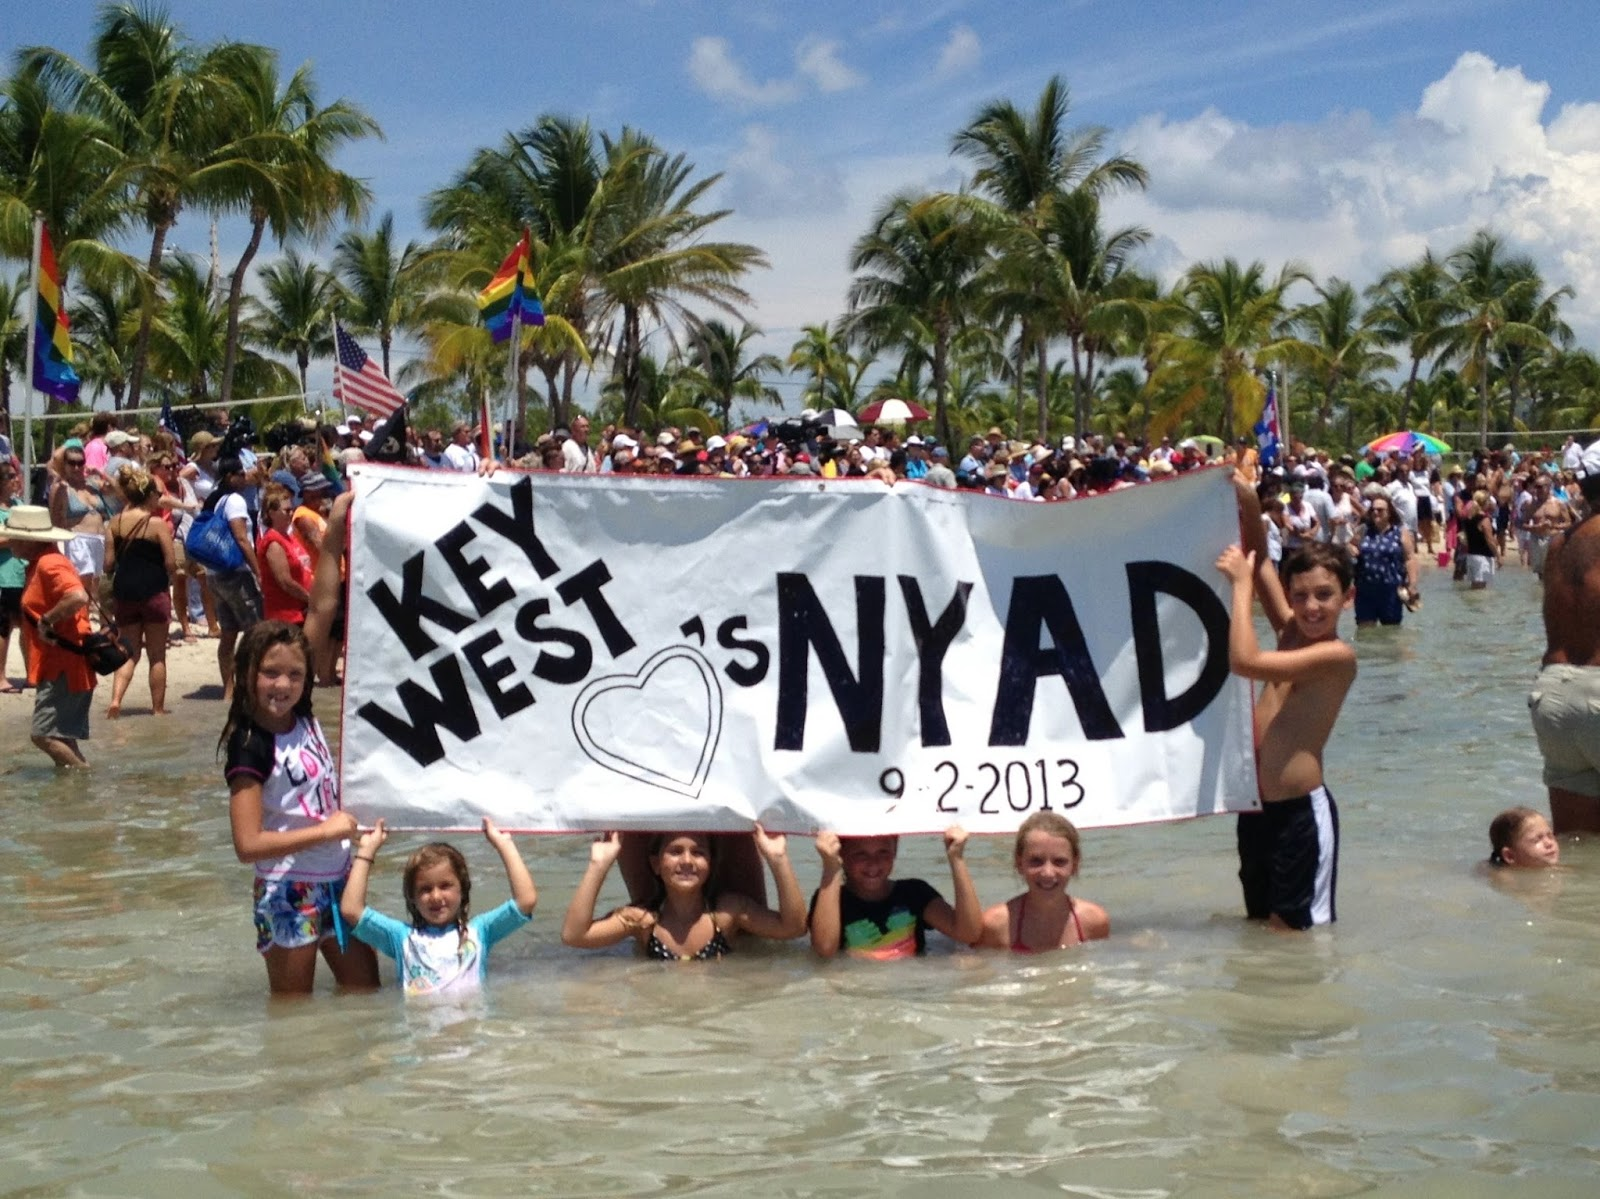 Key West loves Nyad. photo credit: Katie Leigh